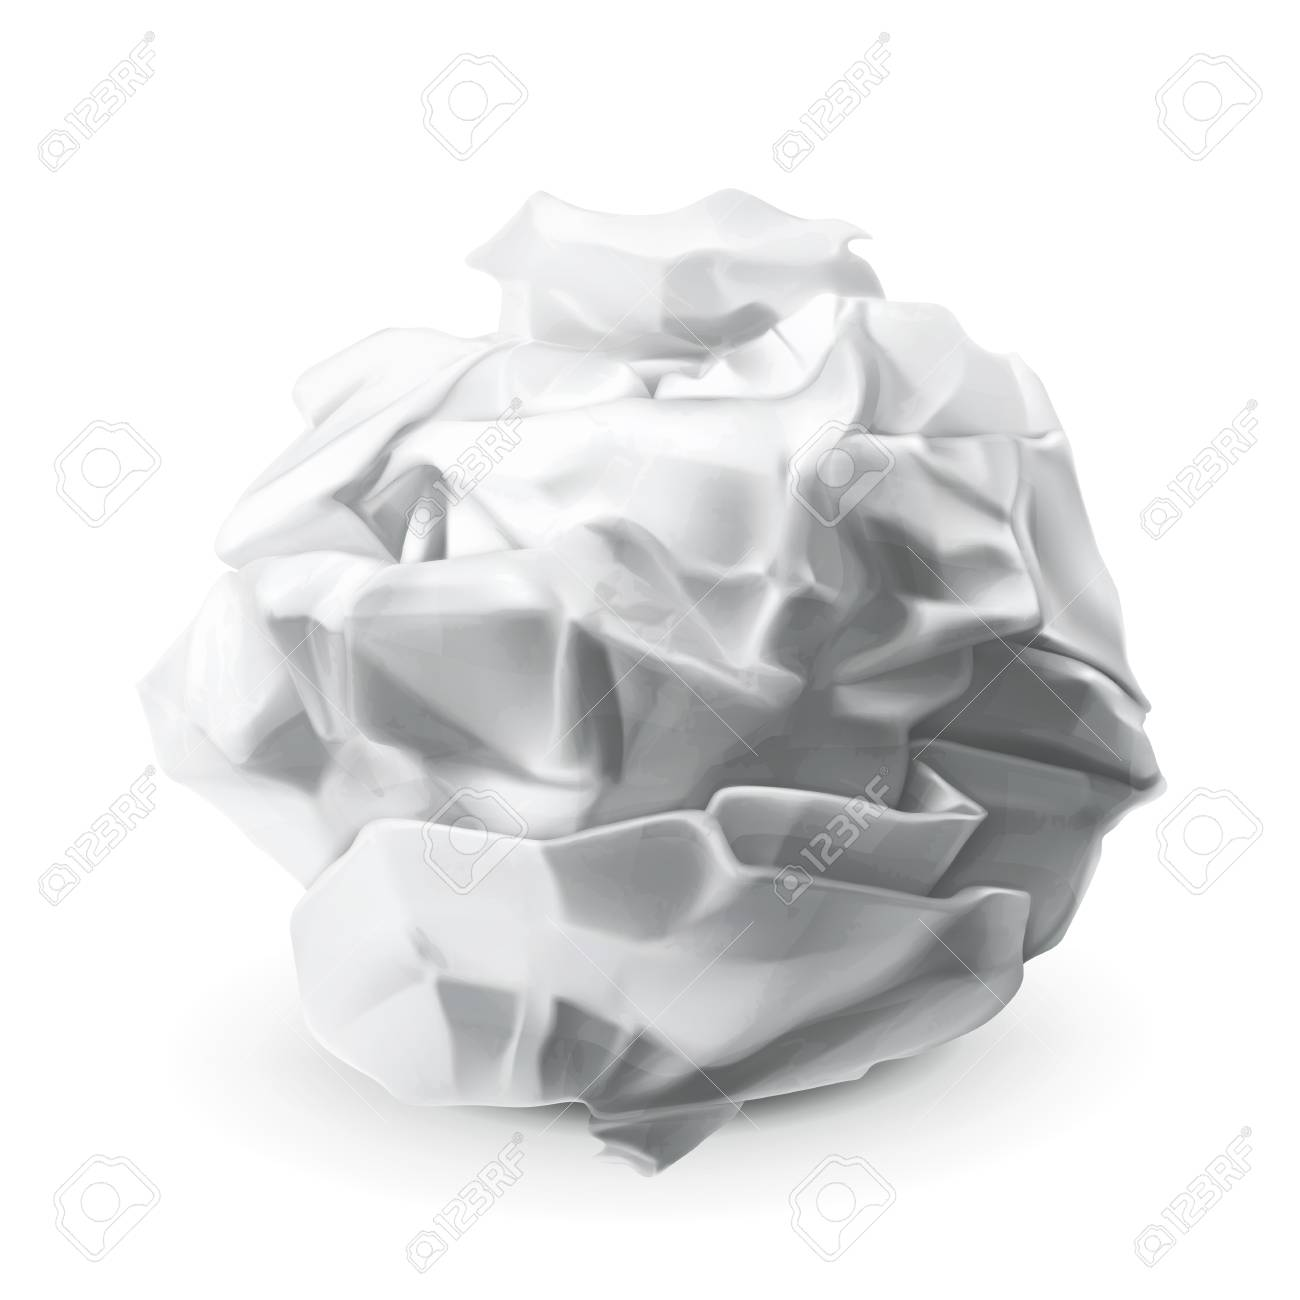 crumpled paper royalty free cliparts, vectors, and stock